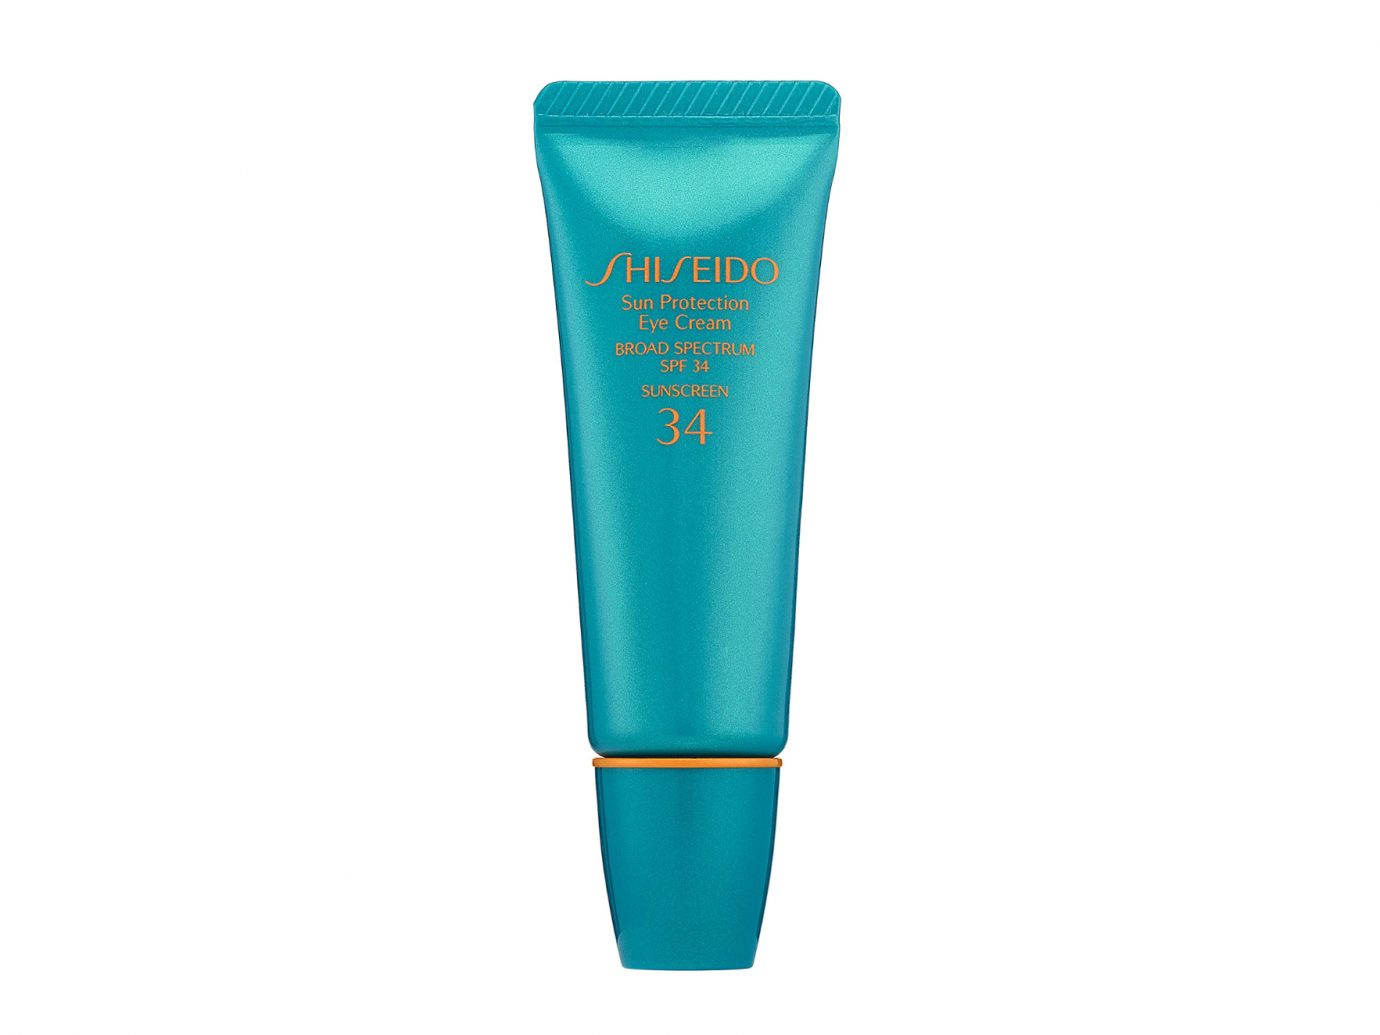 Shiseido Sun Protection Eye Cream Broad Spectrum SPF 34 Sunscreen